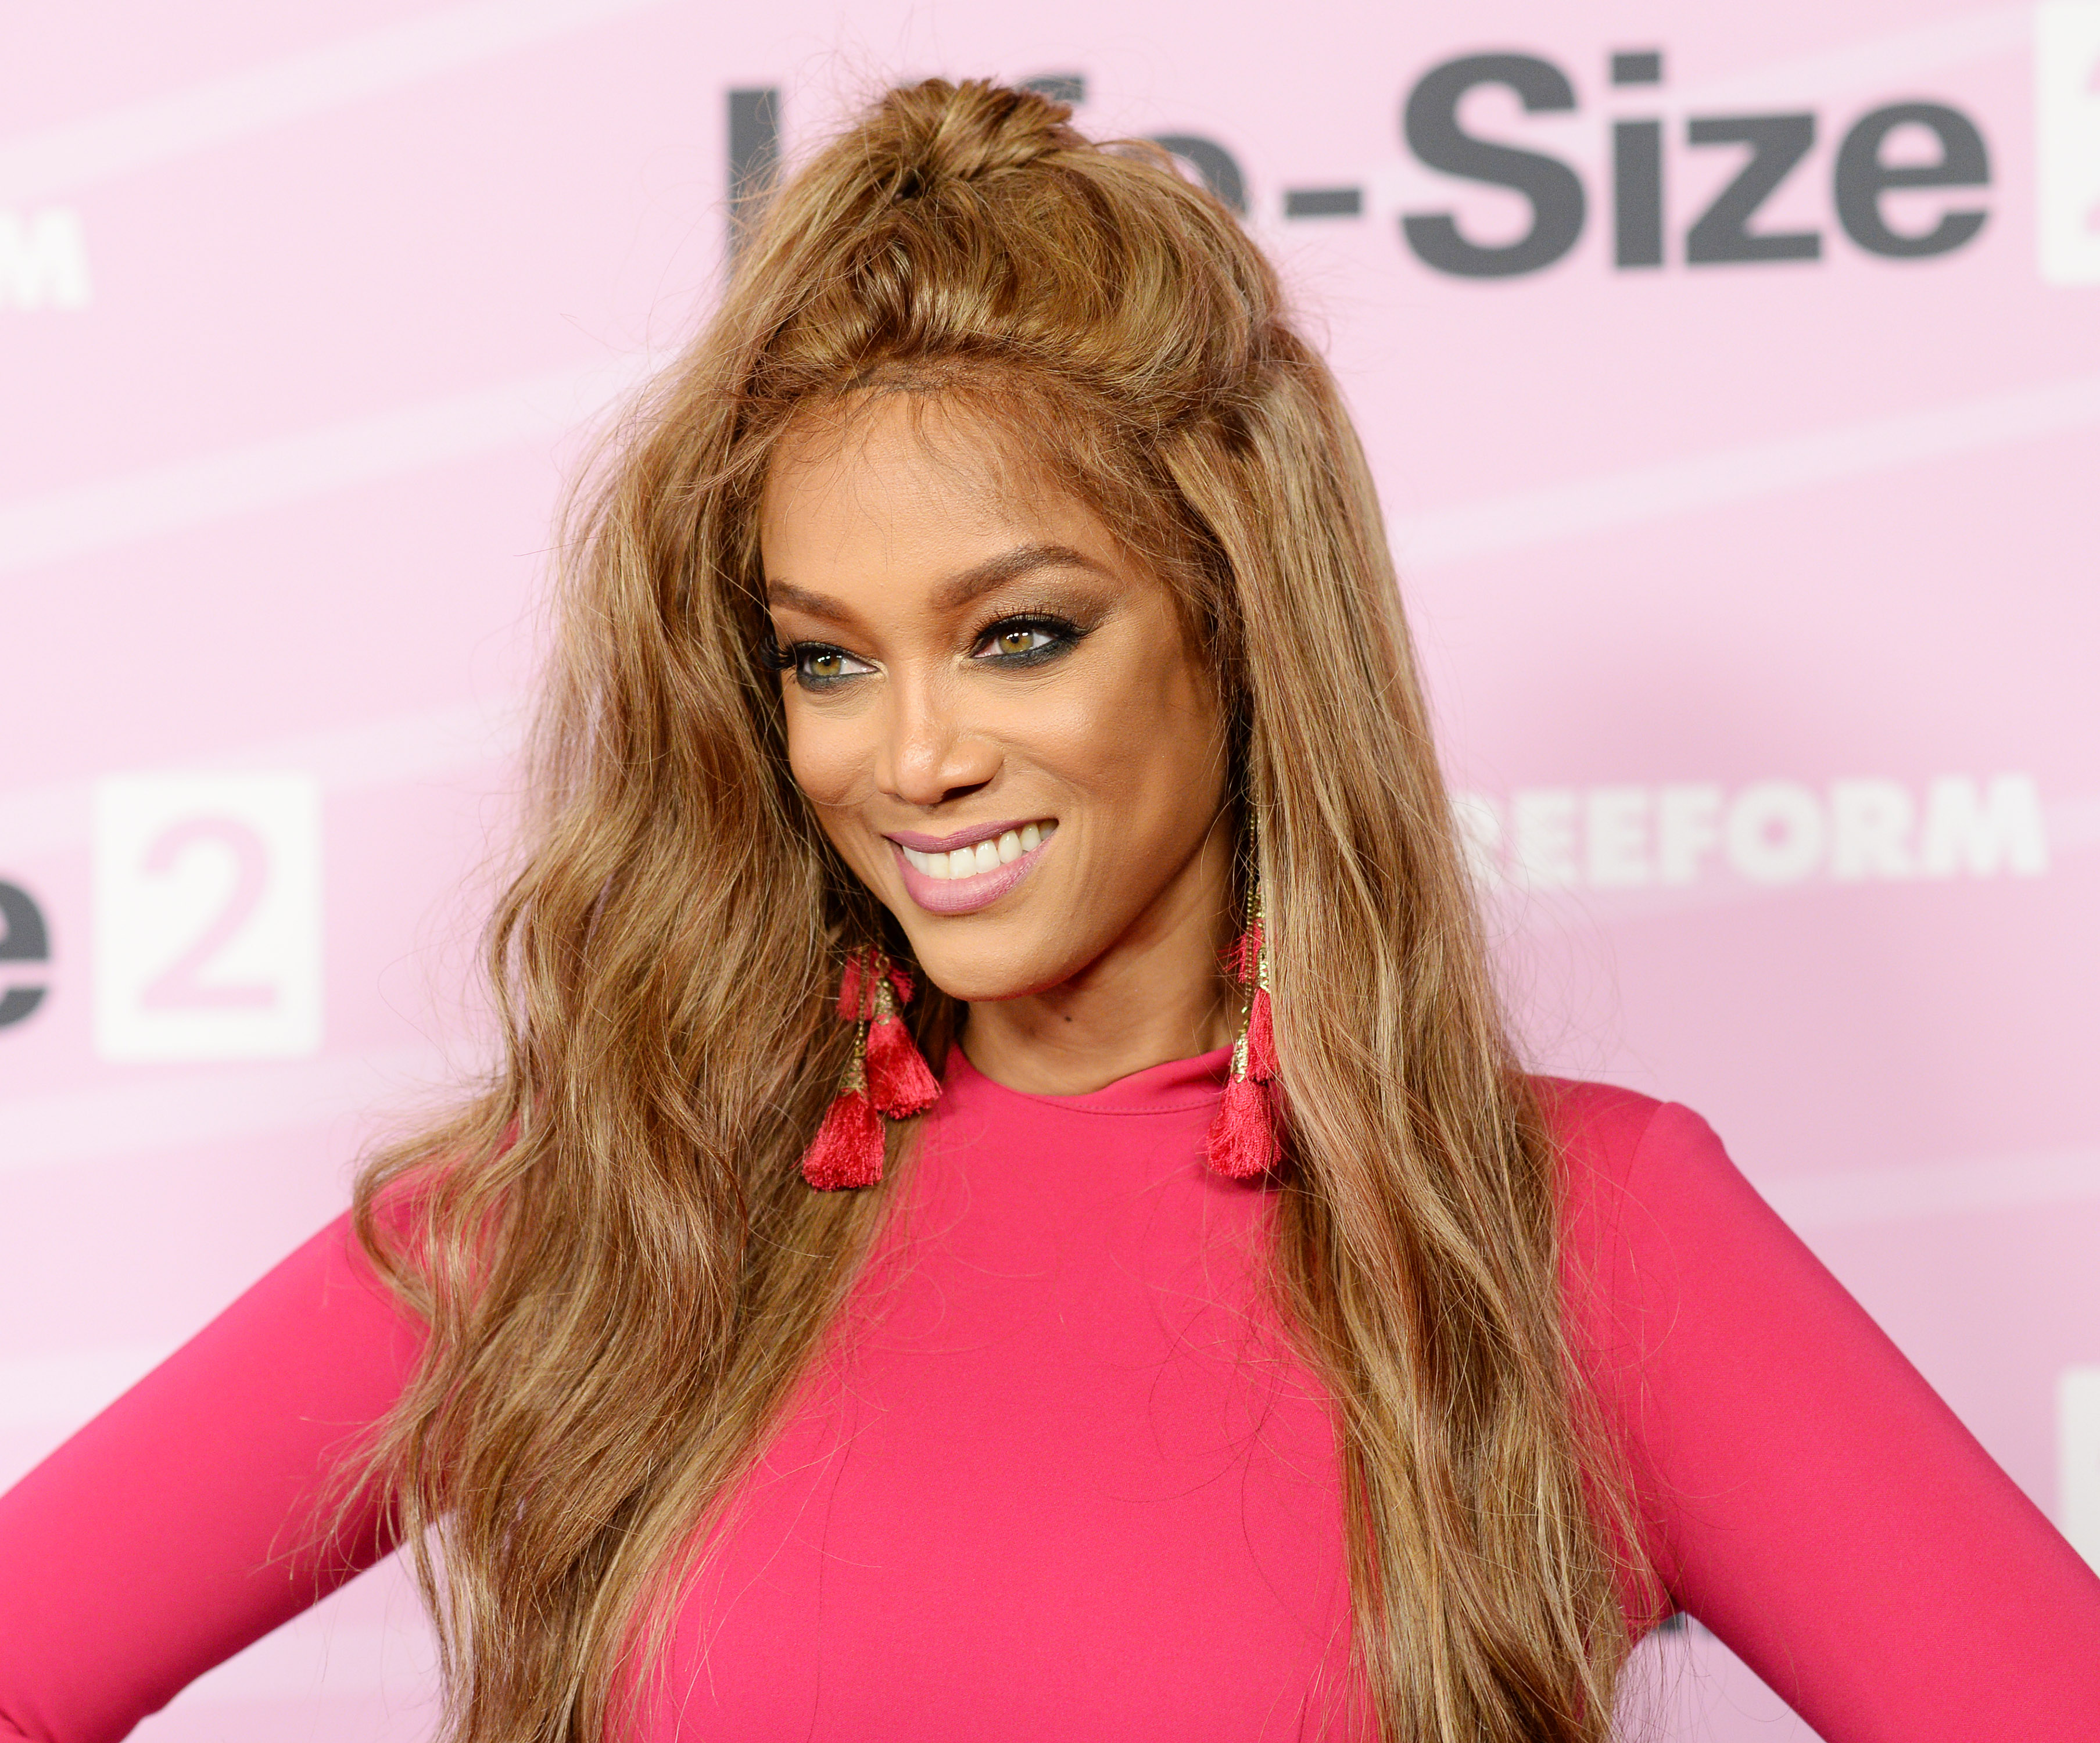 What Is Tyra Banks Net Worth The Antm Host Has Worked Hard